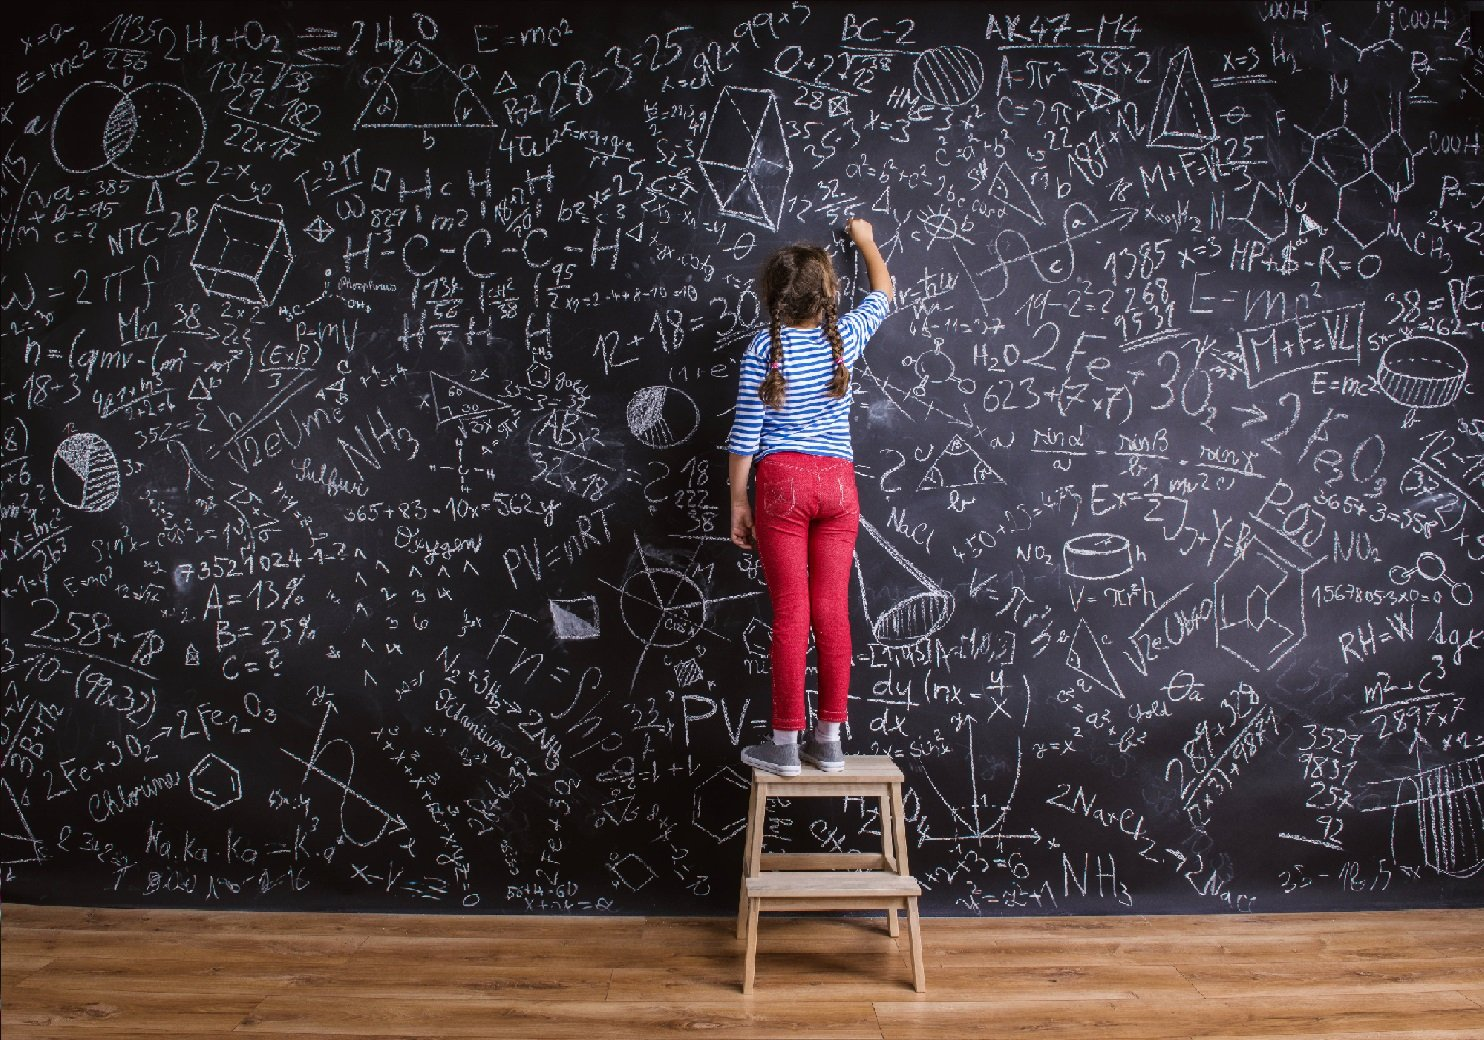 Young girl with supplemental accident insurance and pigtails wearing red pants standing on stool writing on chalkboard